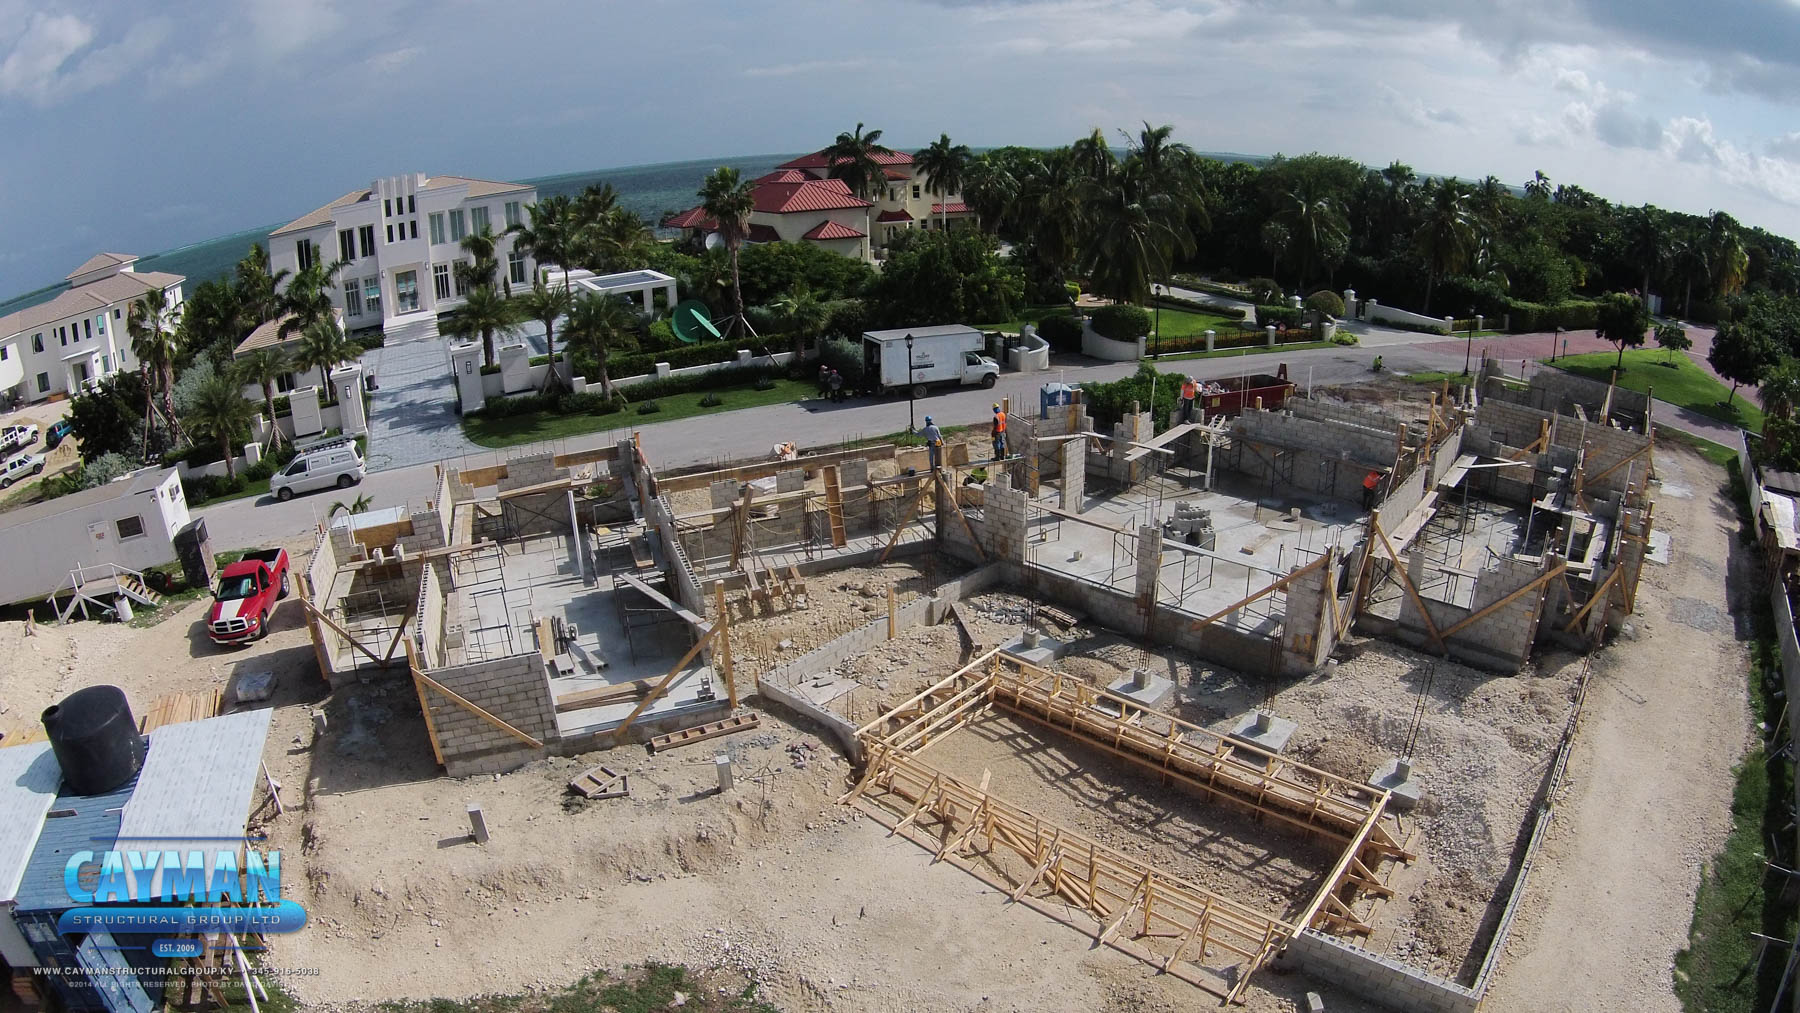 Cayman Islands Construction Projects